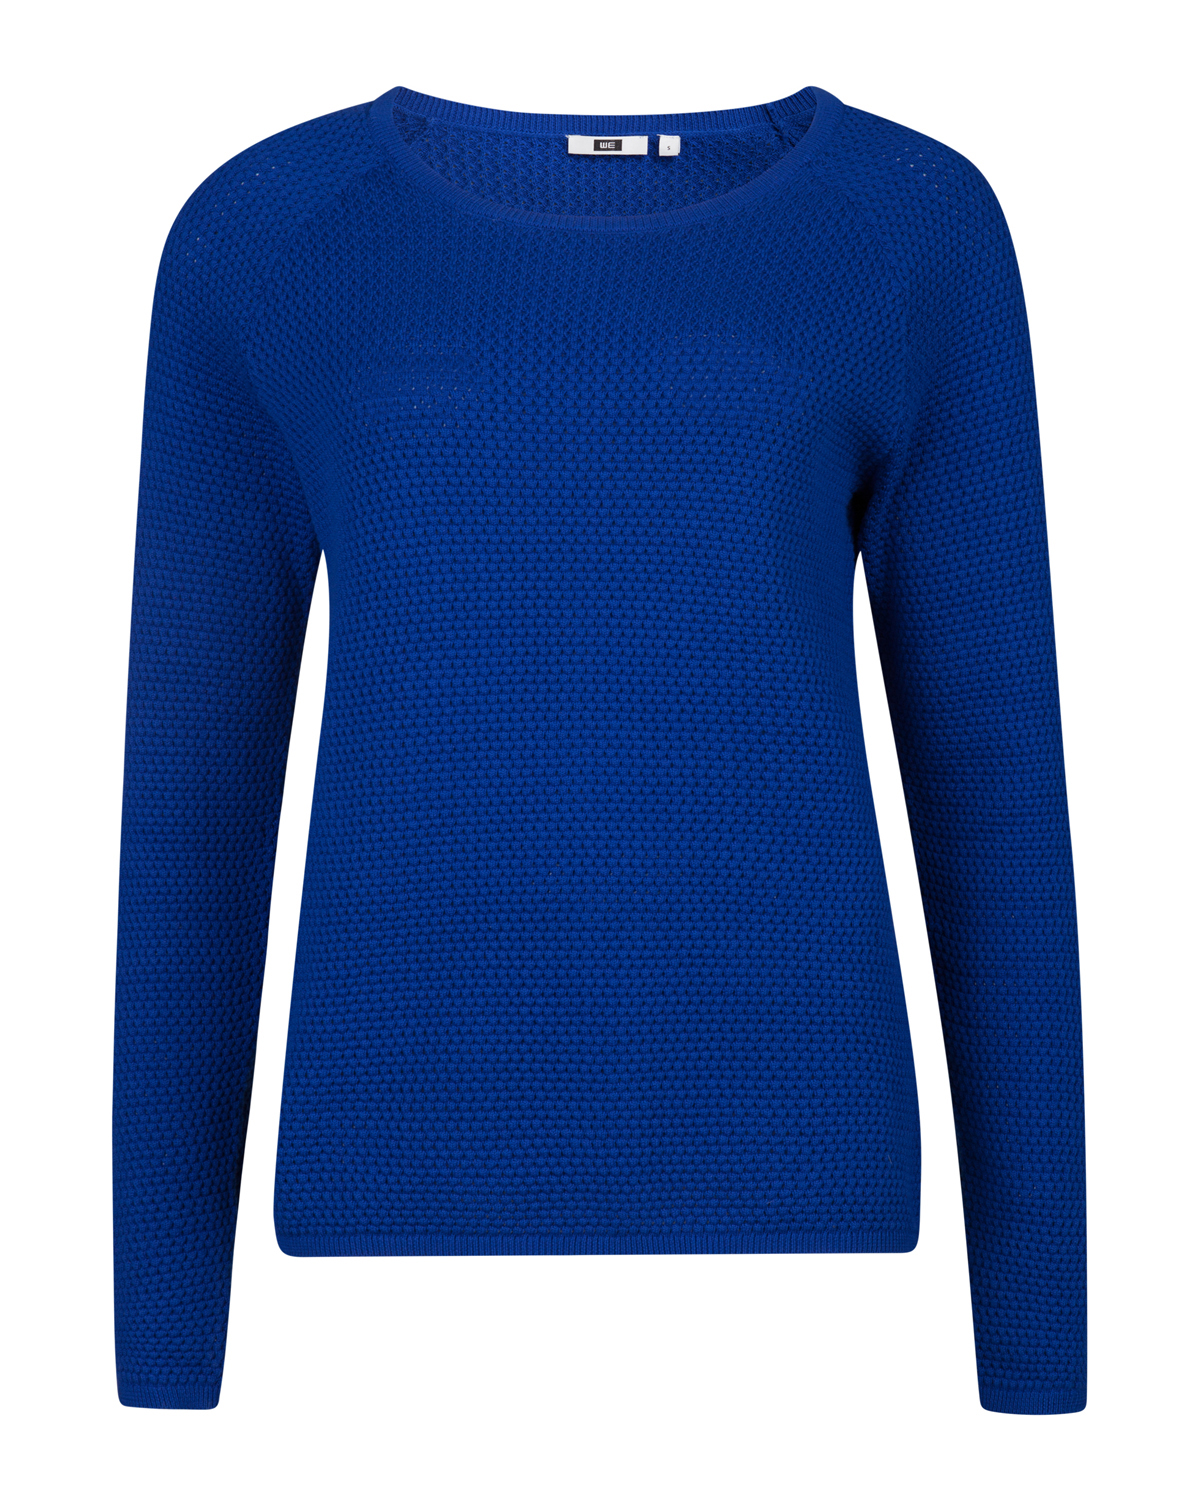 Blauwe Dames Trui.Dames Trui 92840638 We Fashion